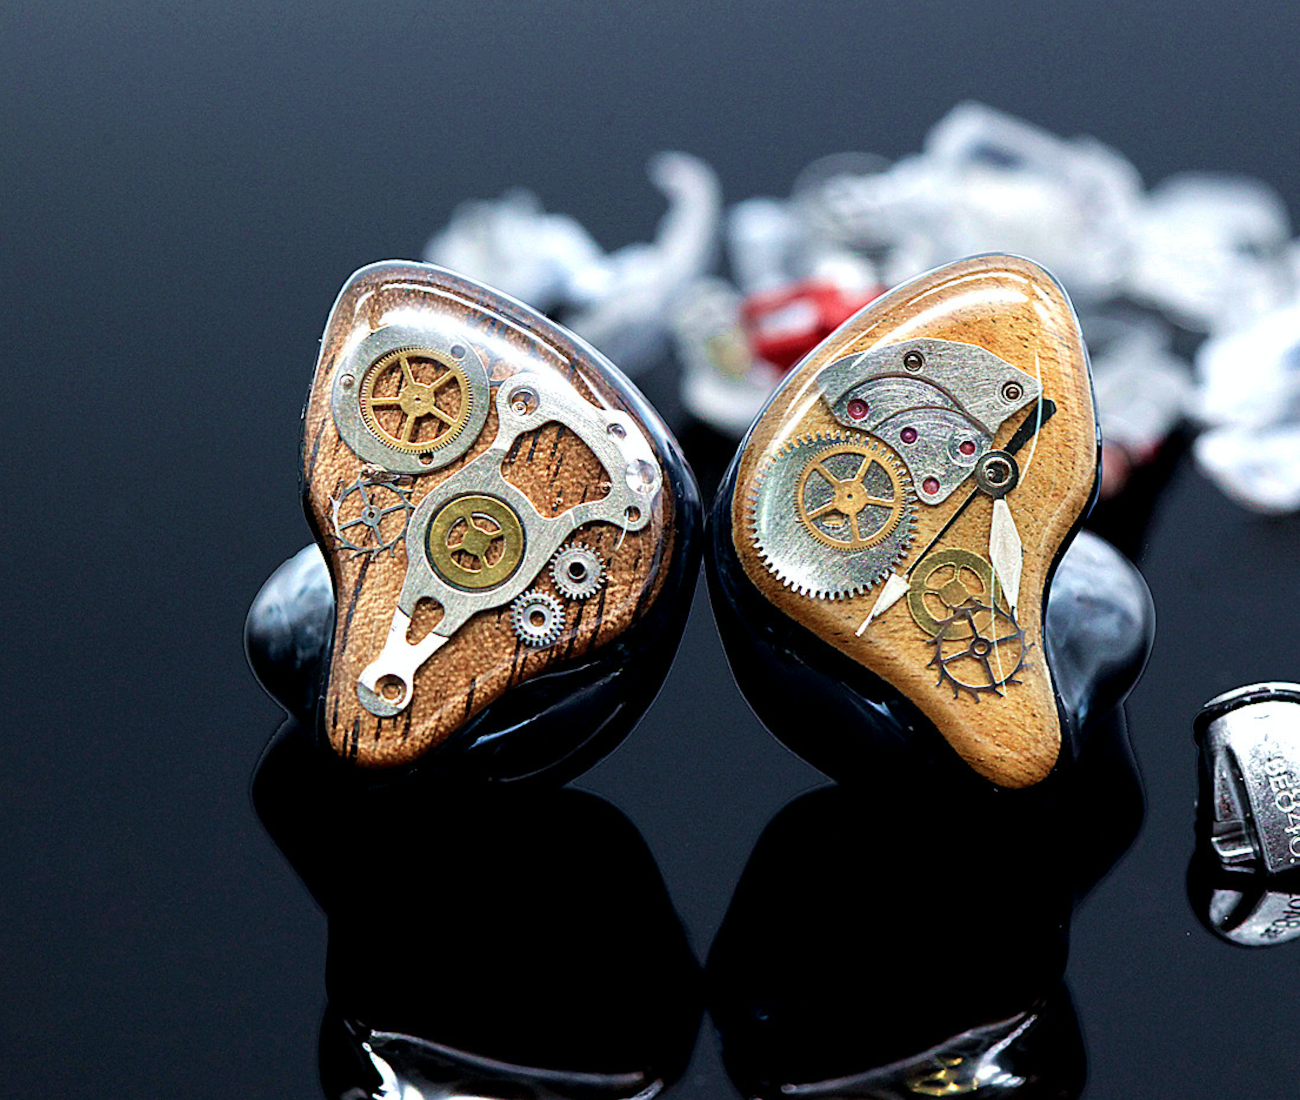 Customized In-Ears der absoluten Spitzenklasse